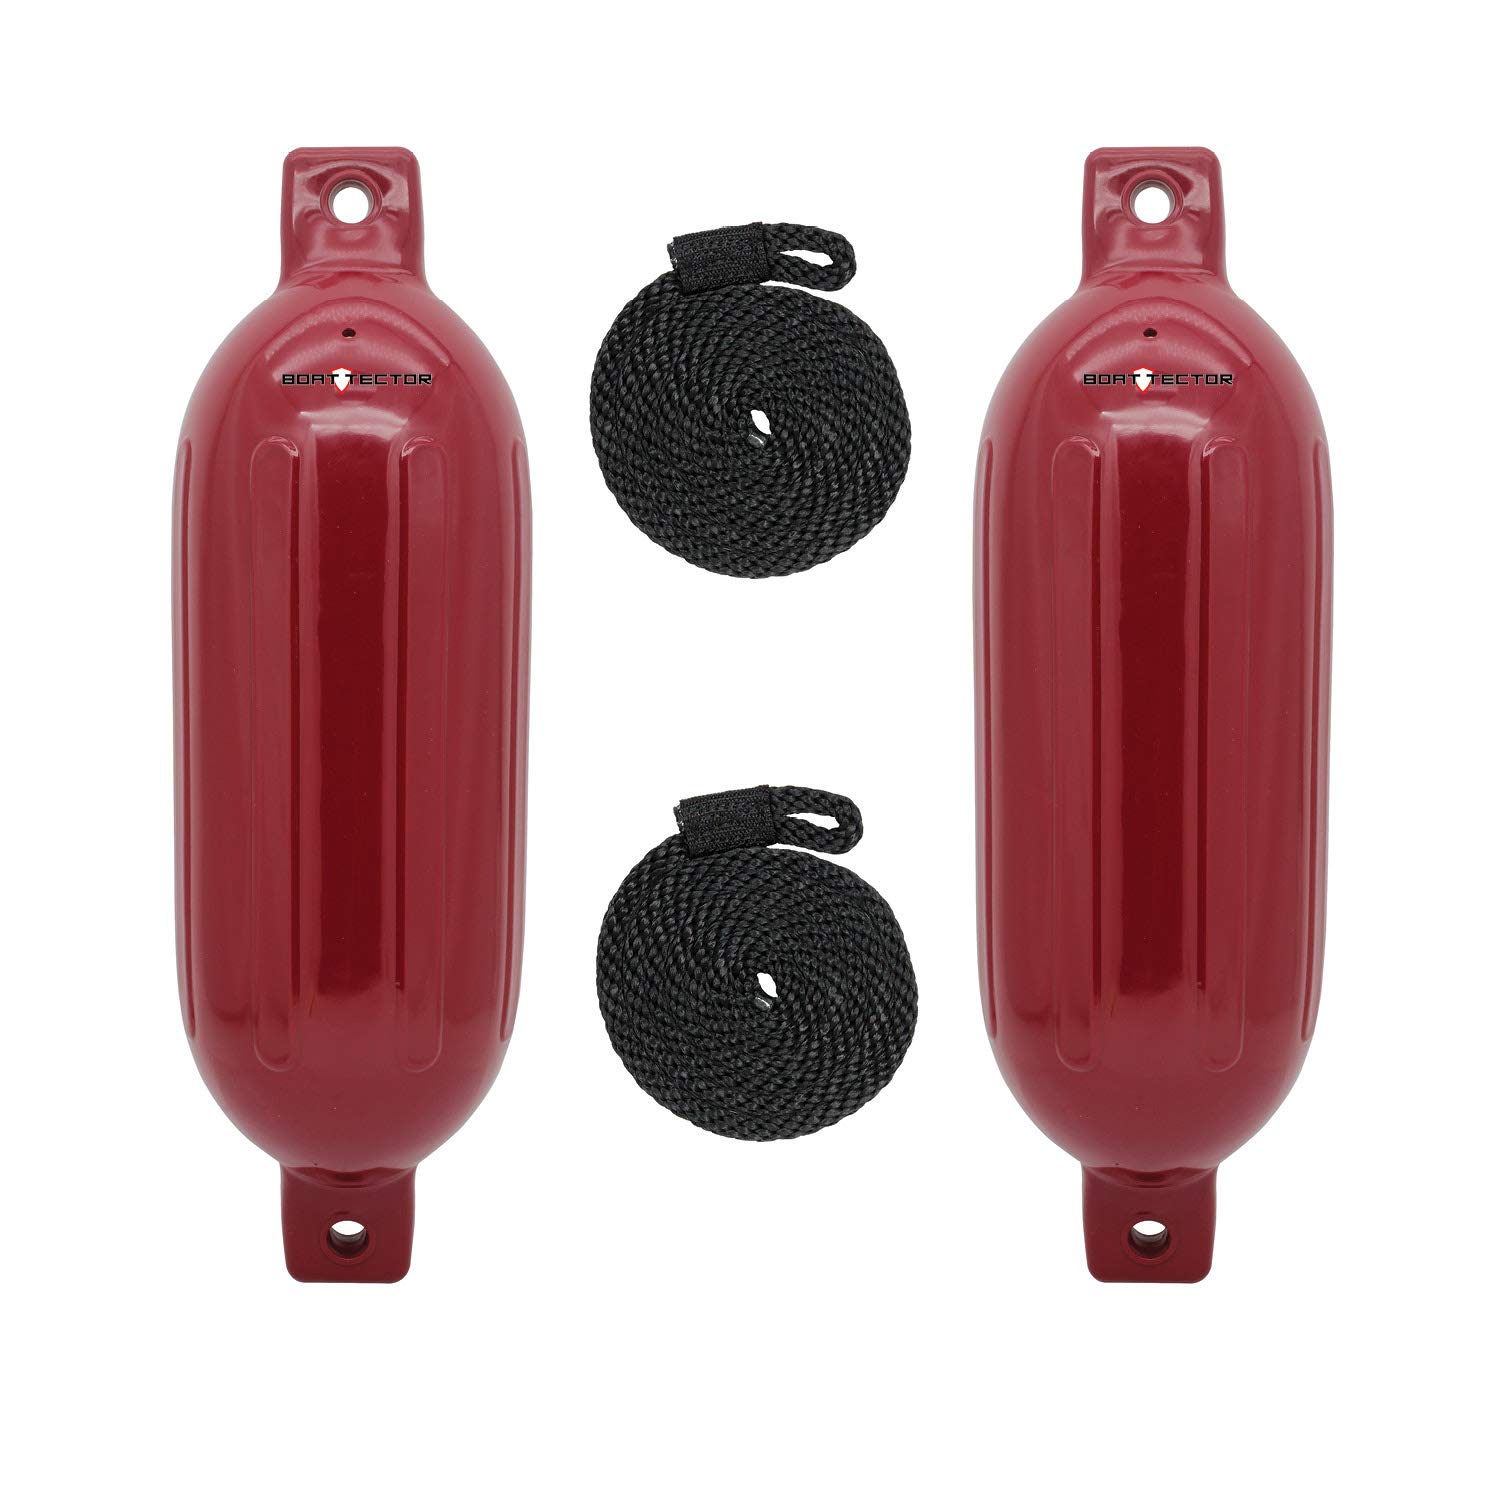 Extreme Max Standard 3006.7619 BoatTector Inflatable Fender Value 2-Pack-8.5'' x 27'', Cranberry